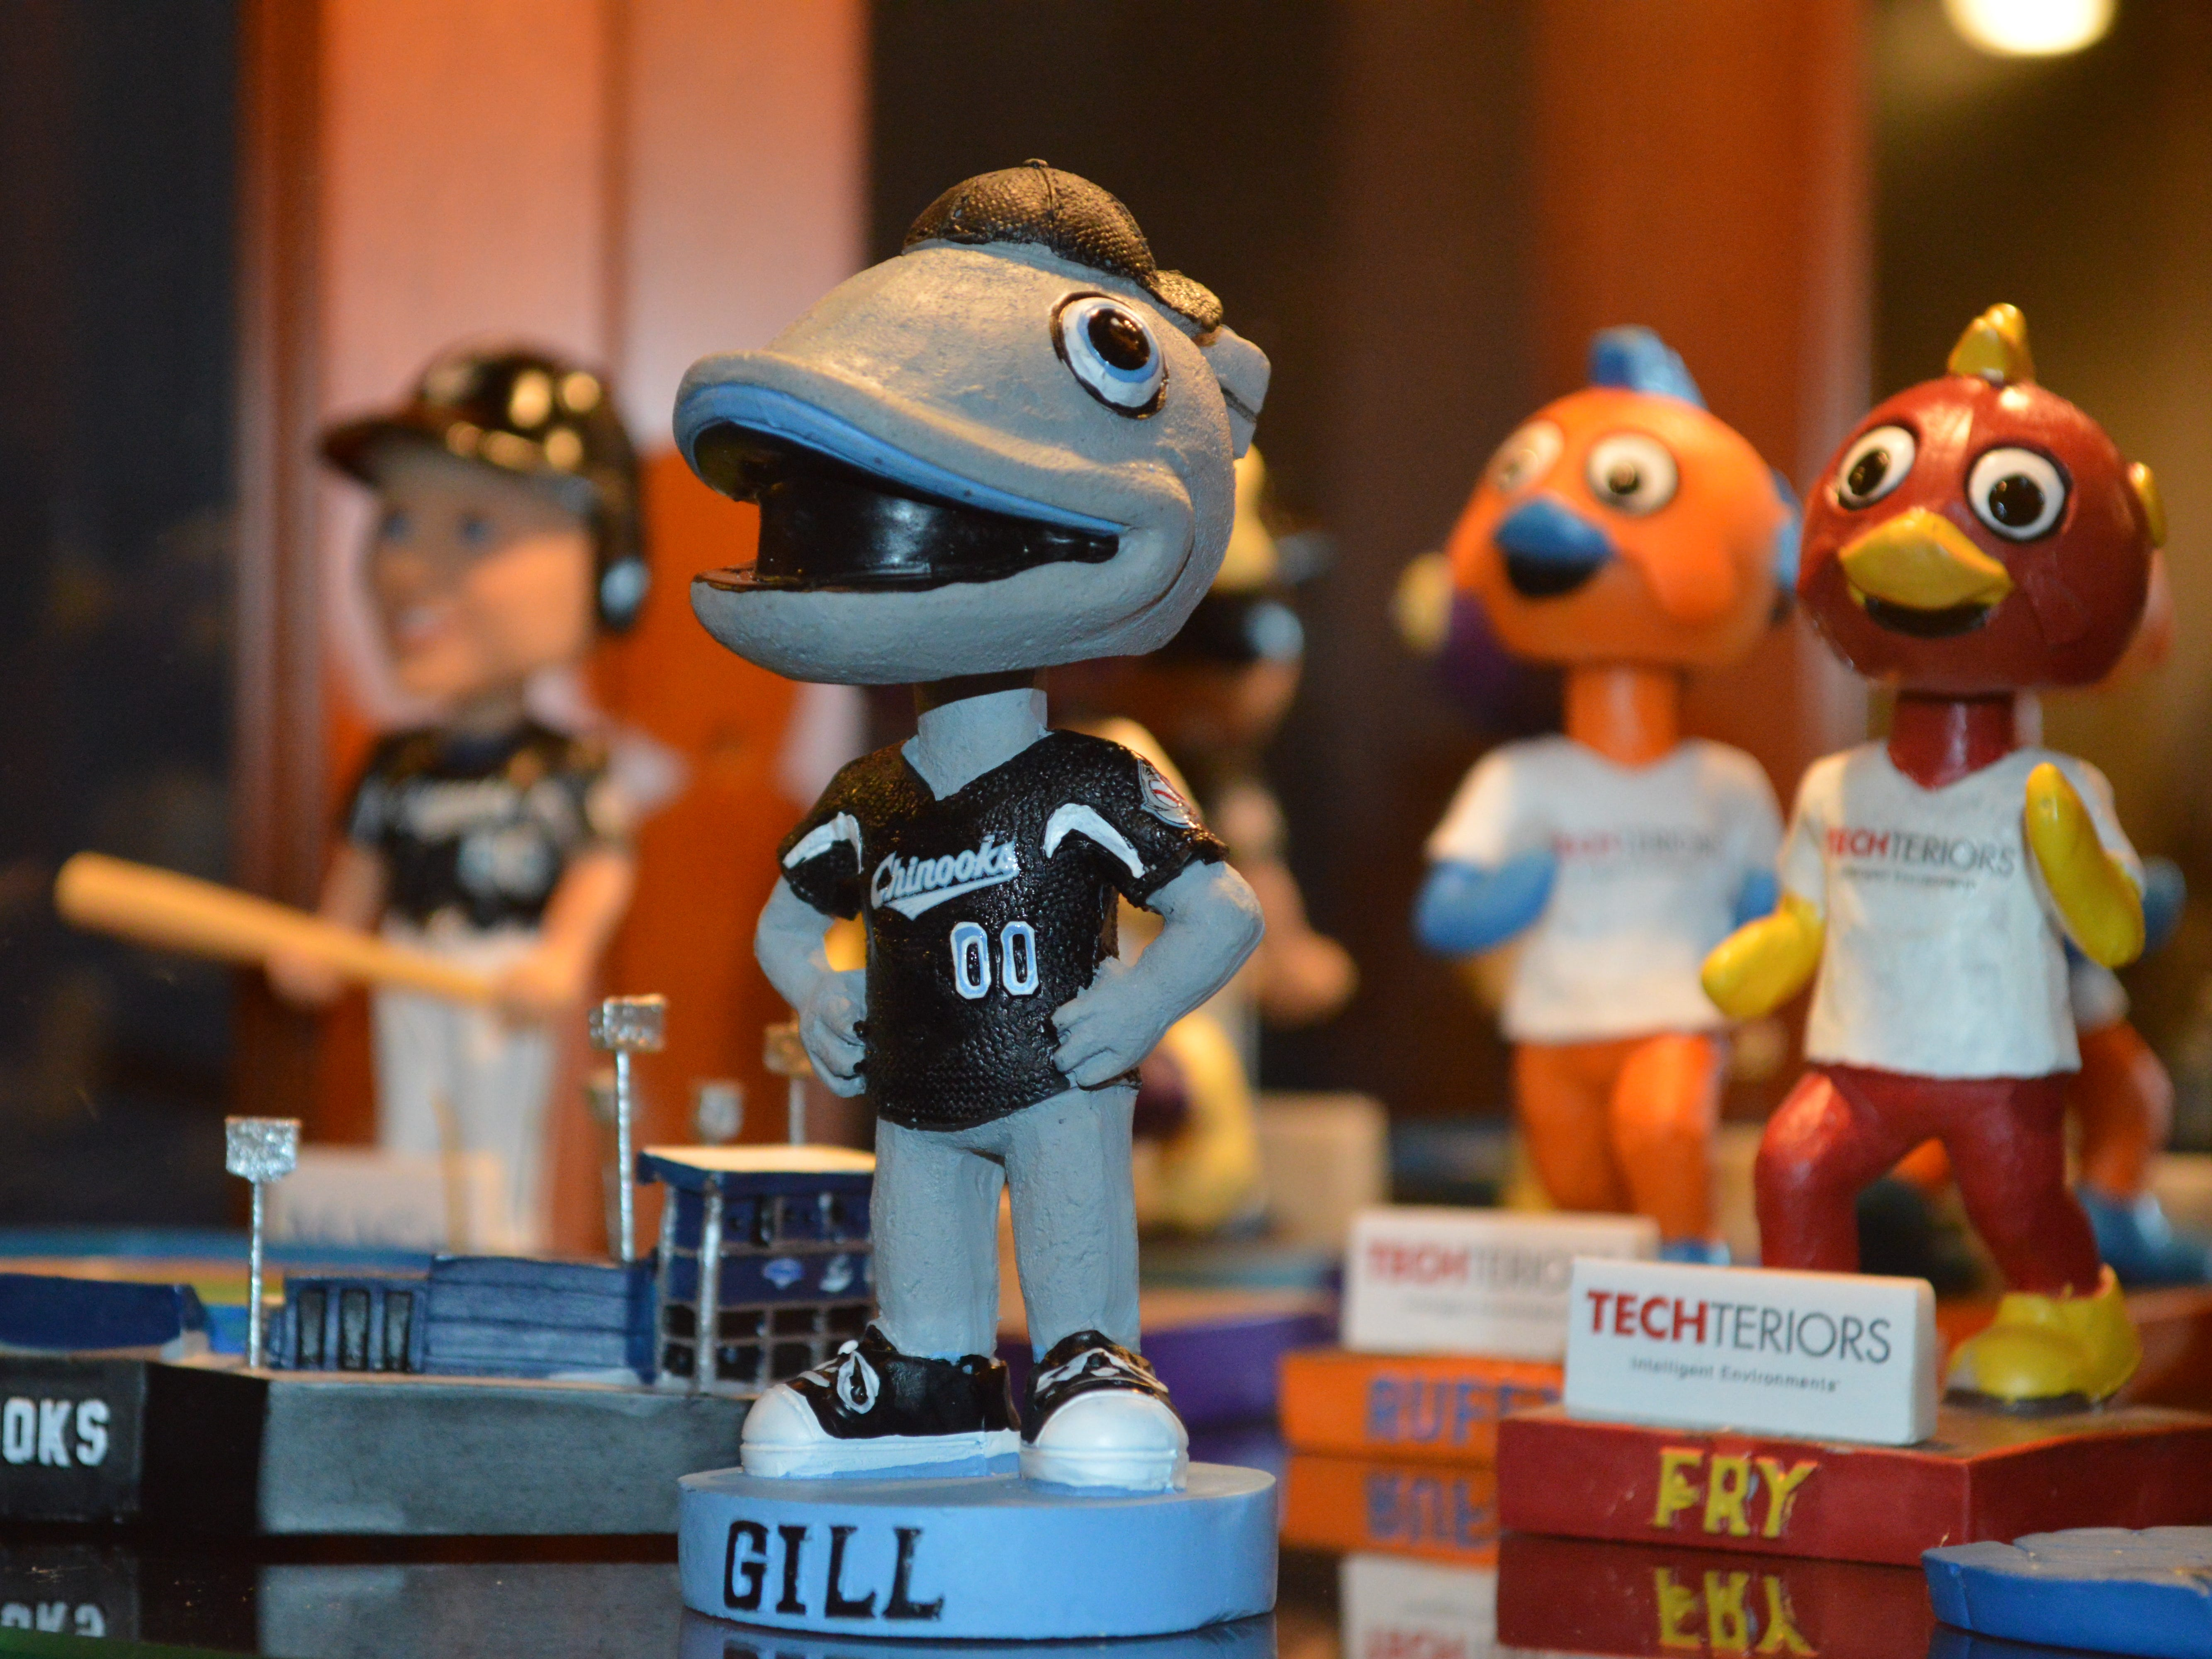 John Jastroch has about 500 bobbleheads in his collection.